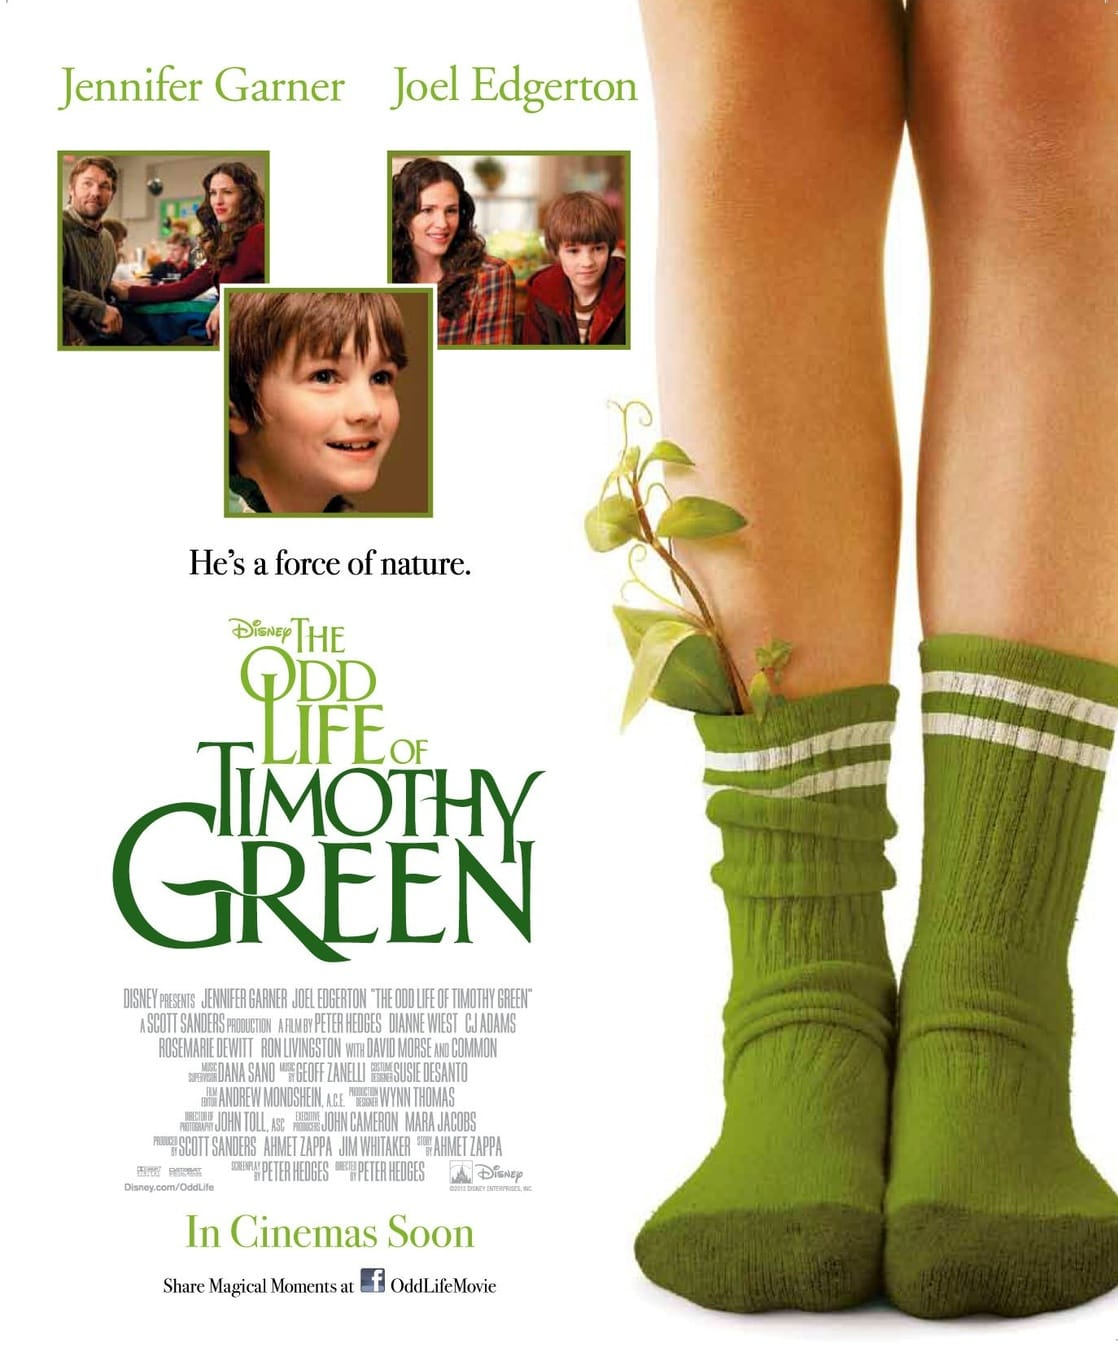 summary of the odd life of timothy green essay The odd life of timothy green: a fairy tale for the infertile jennifer garner and joel edgerton play a couple who become parents when a magical boy crawls out of their garden.